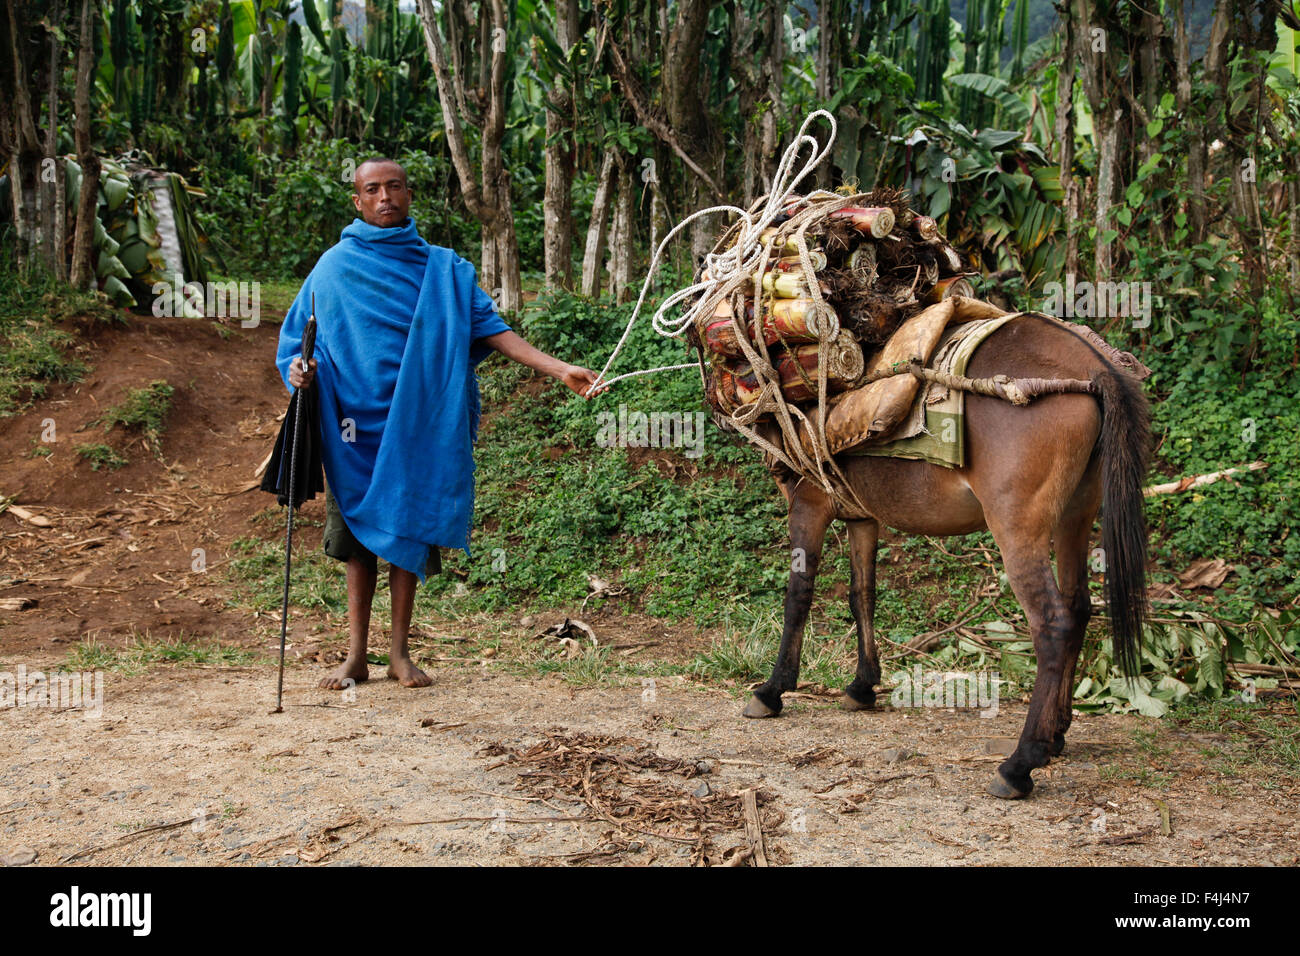 Farmer in the Meket mountains, near the Rift Valley, in Ethiopia, Africa - Stock Image